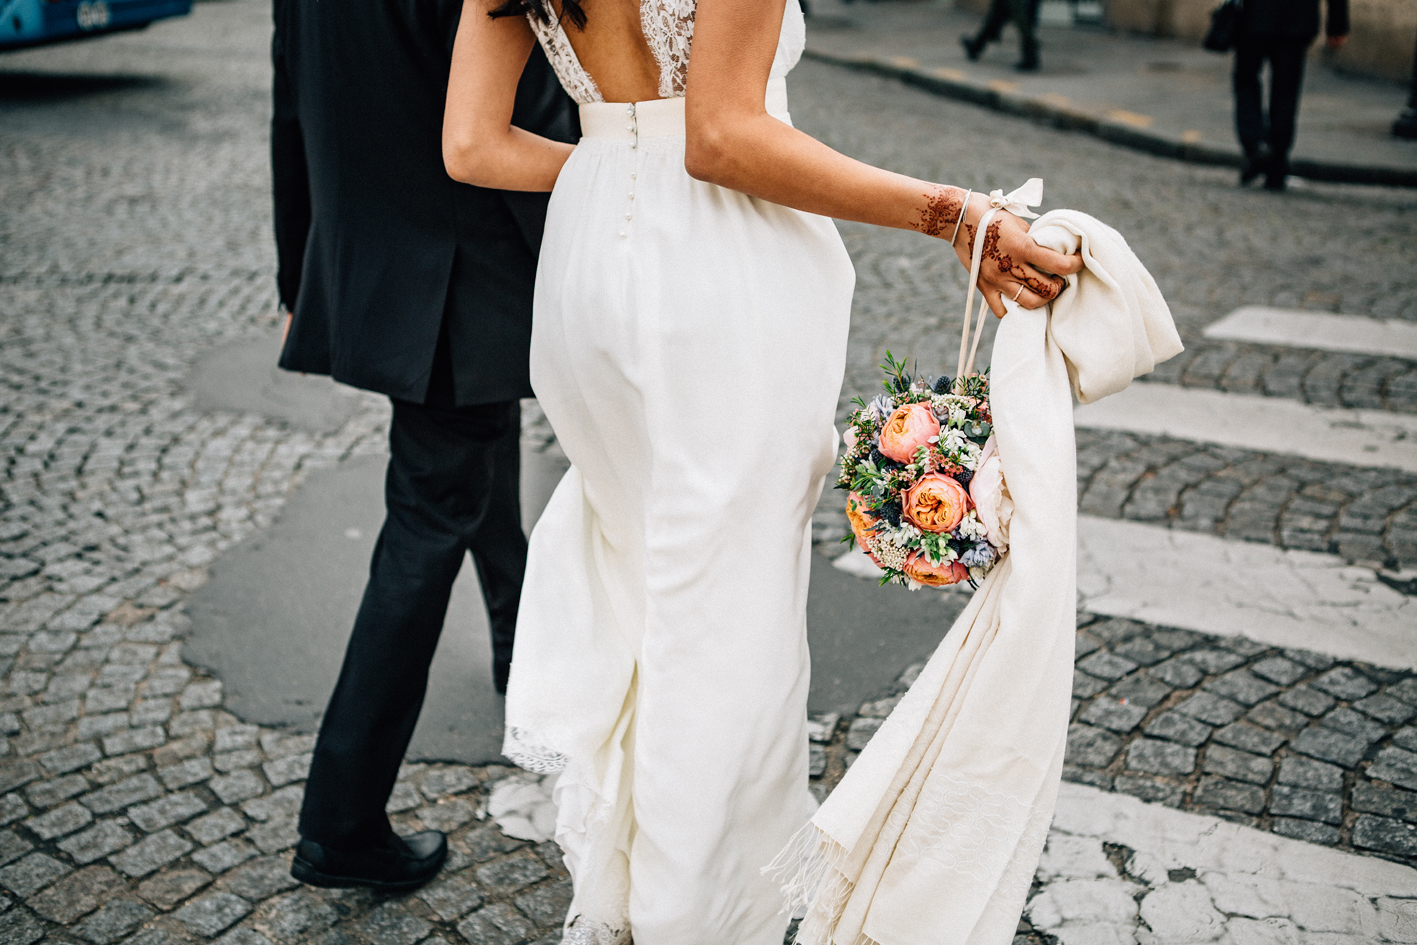 pierreatelier-photographer-france-paris-wedding-planner-designer-event-elopement-elopinparis-stylemepretty